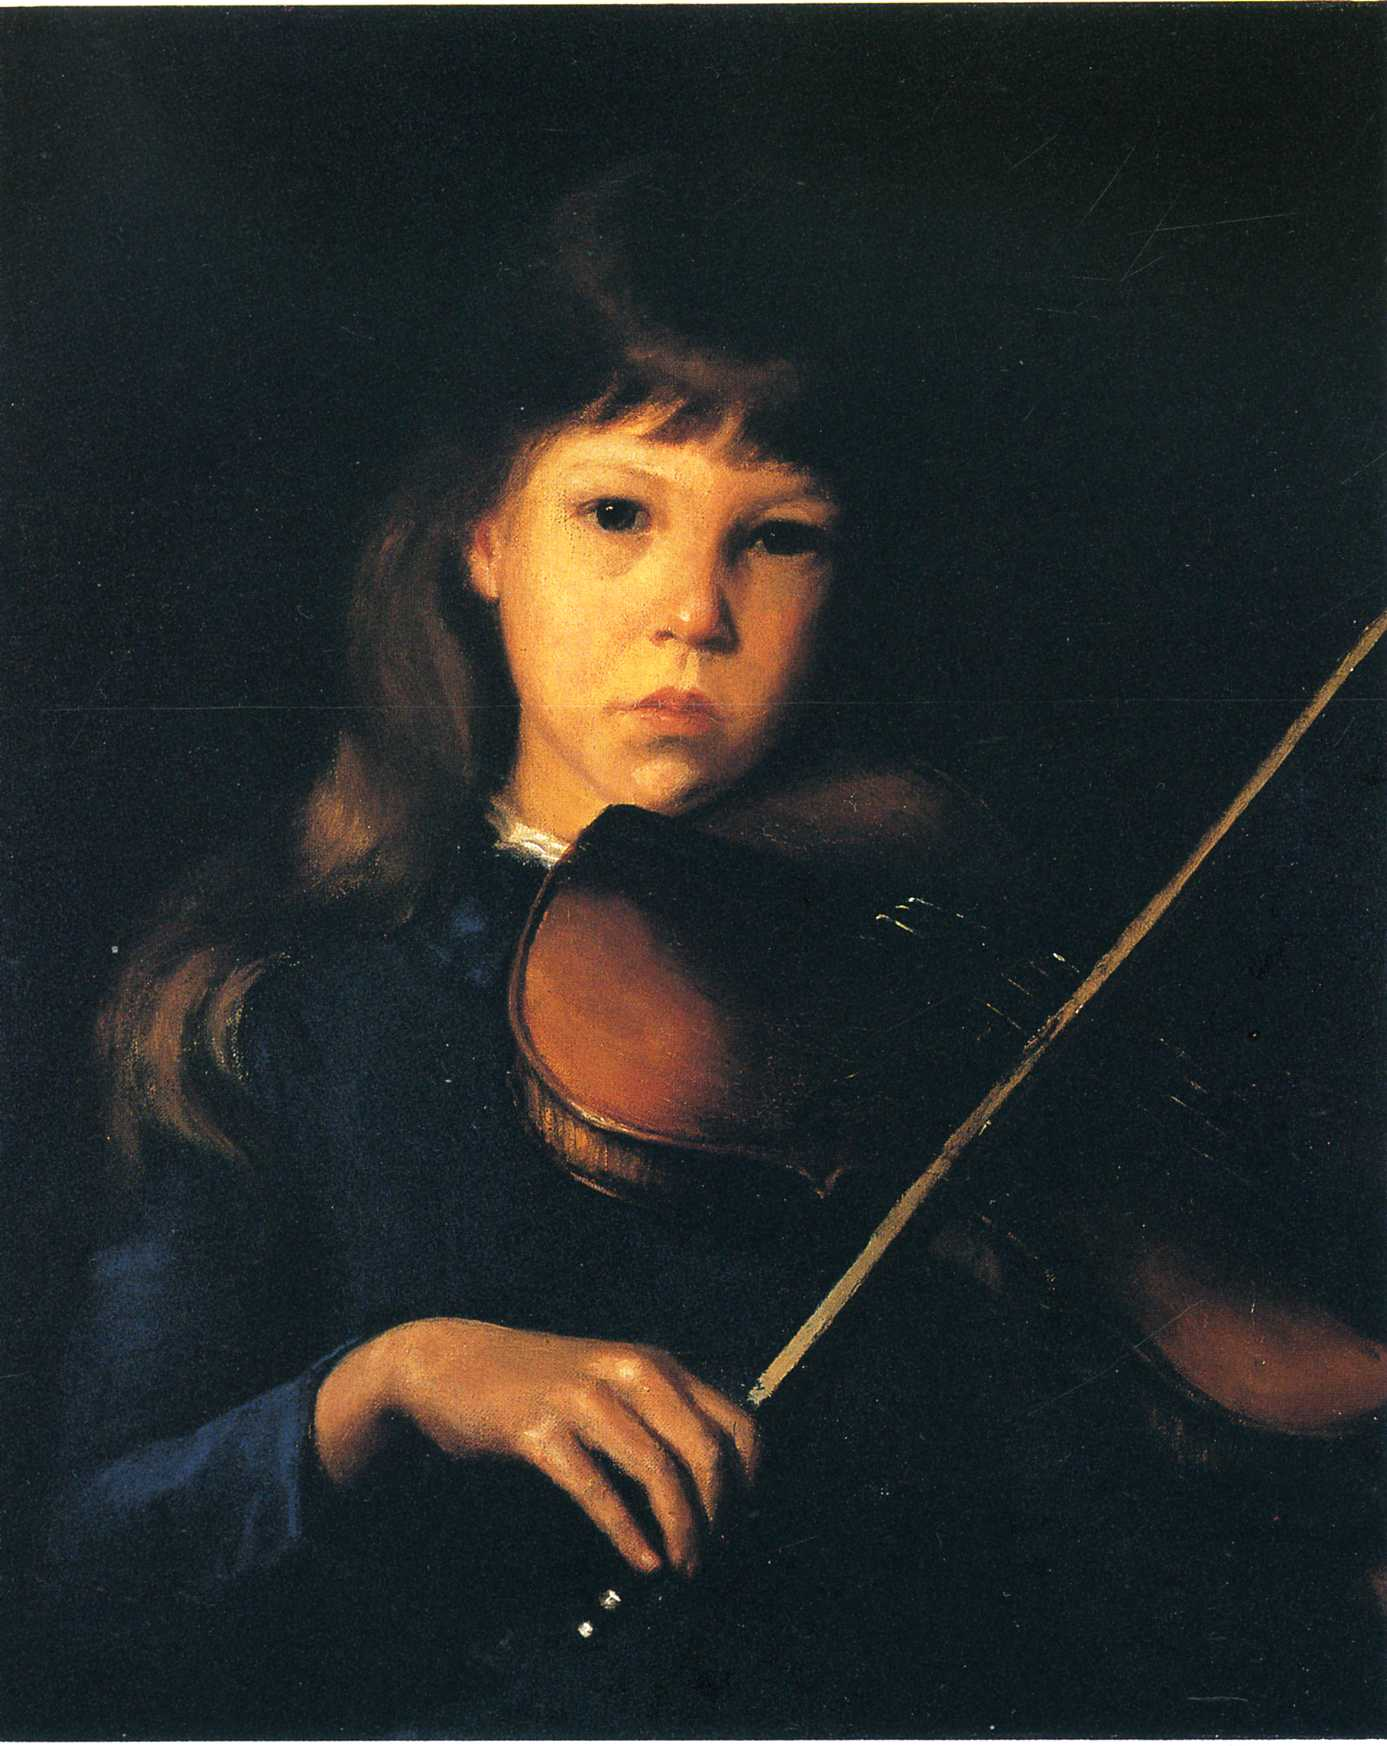 1885 - 1886 - The Beginner (Margare Perry) y Elisabeth (Lilla) Cabot Perry (1848 - 1933)